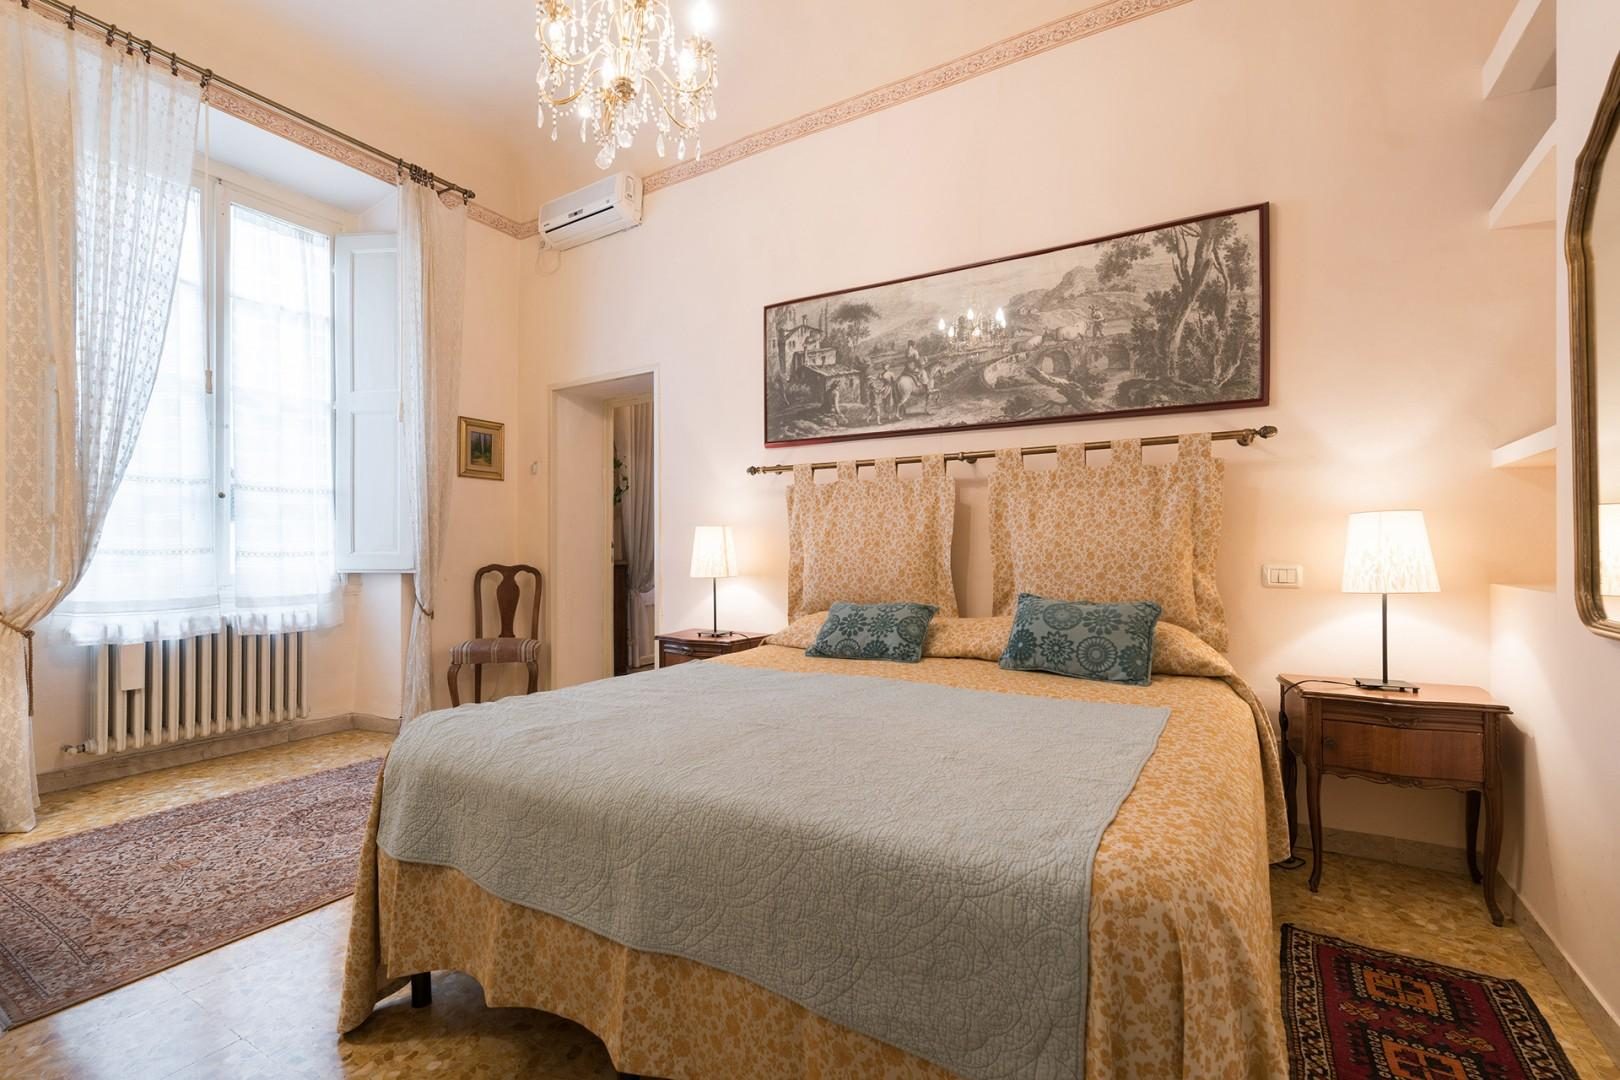 The bedroom is small but comfortable with two beds which can be made up as one.